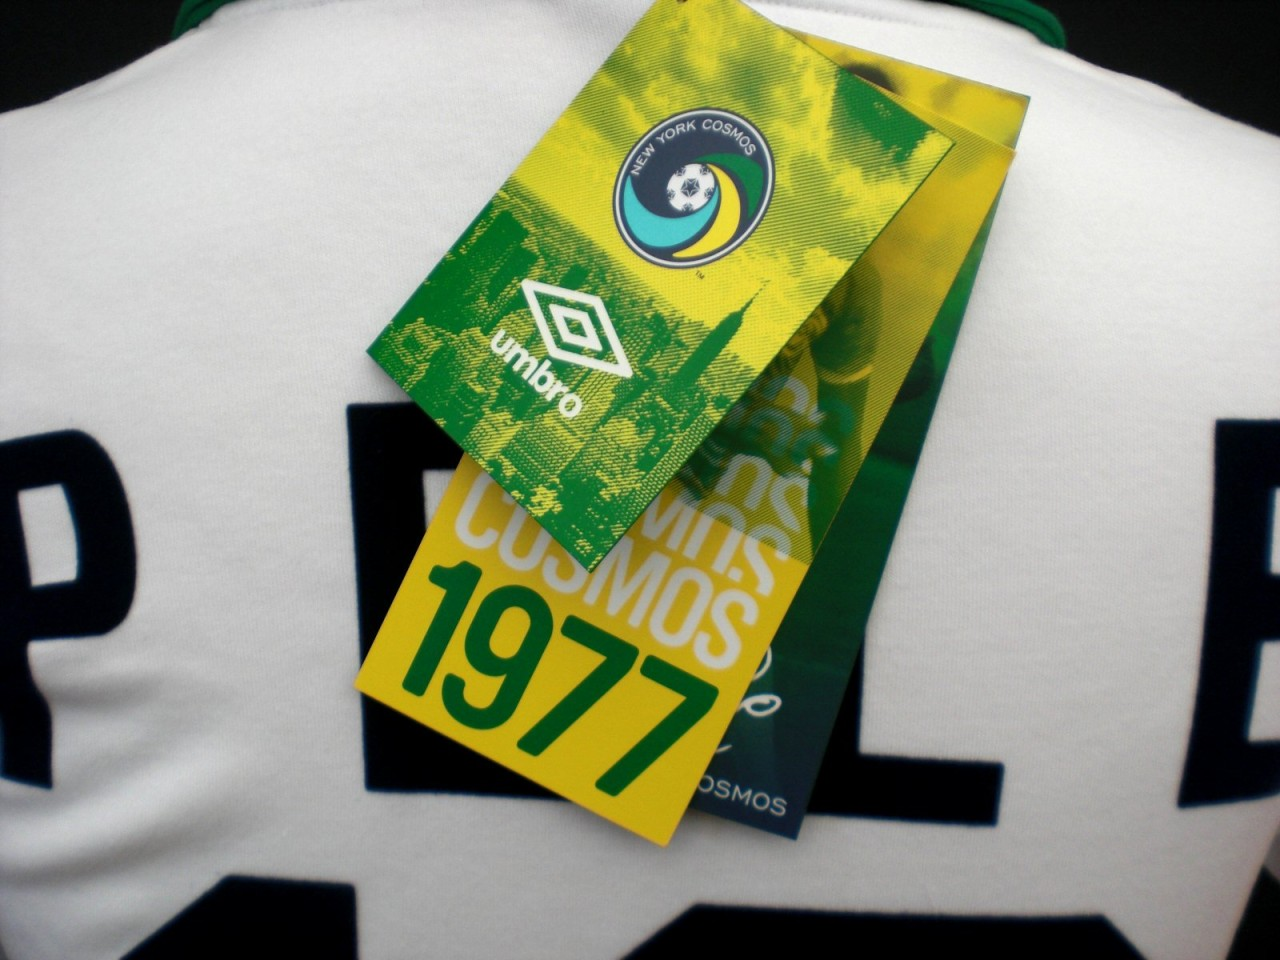 e2b9efb08 Description Summary. NEW YORK COSMOS Umbro 1977 Pele Retro Football Shirt  ...